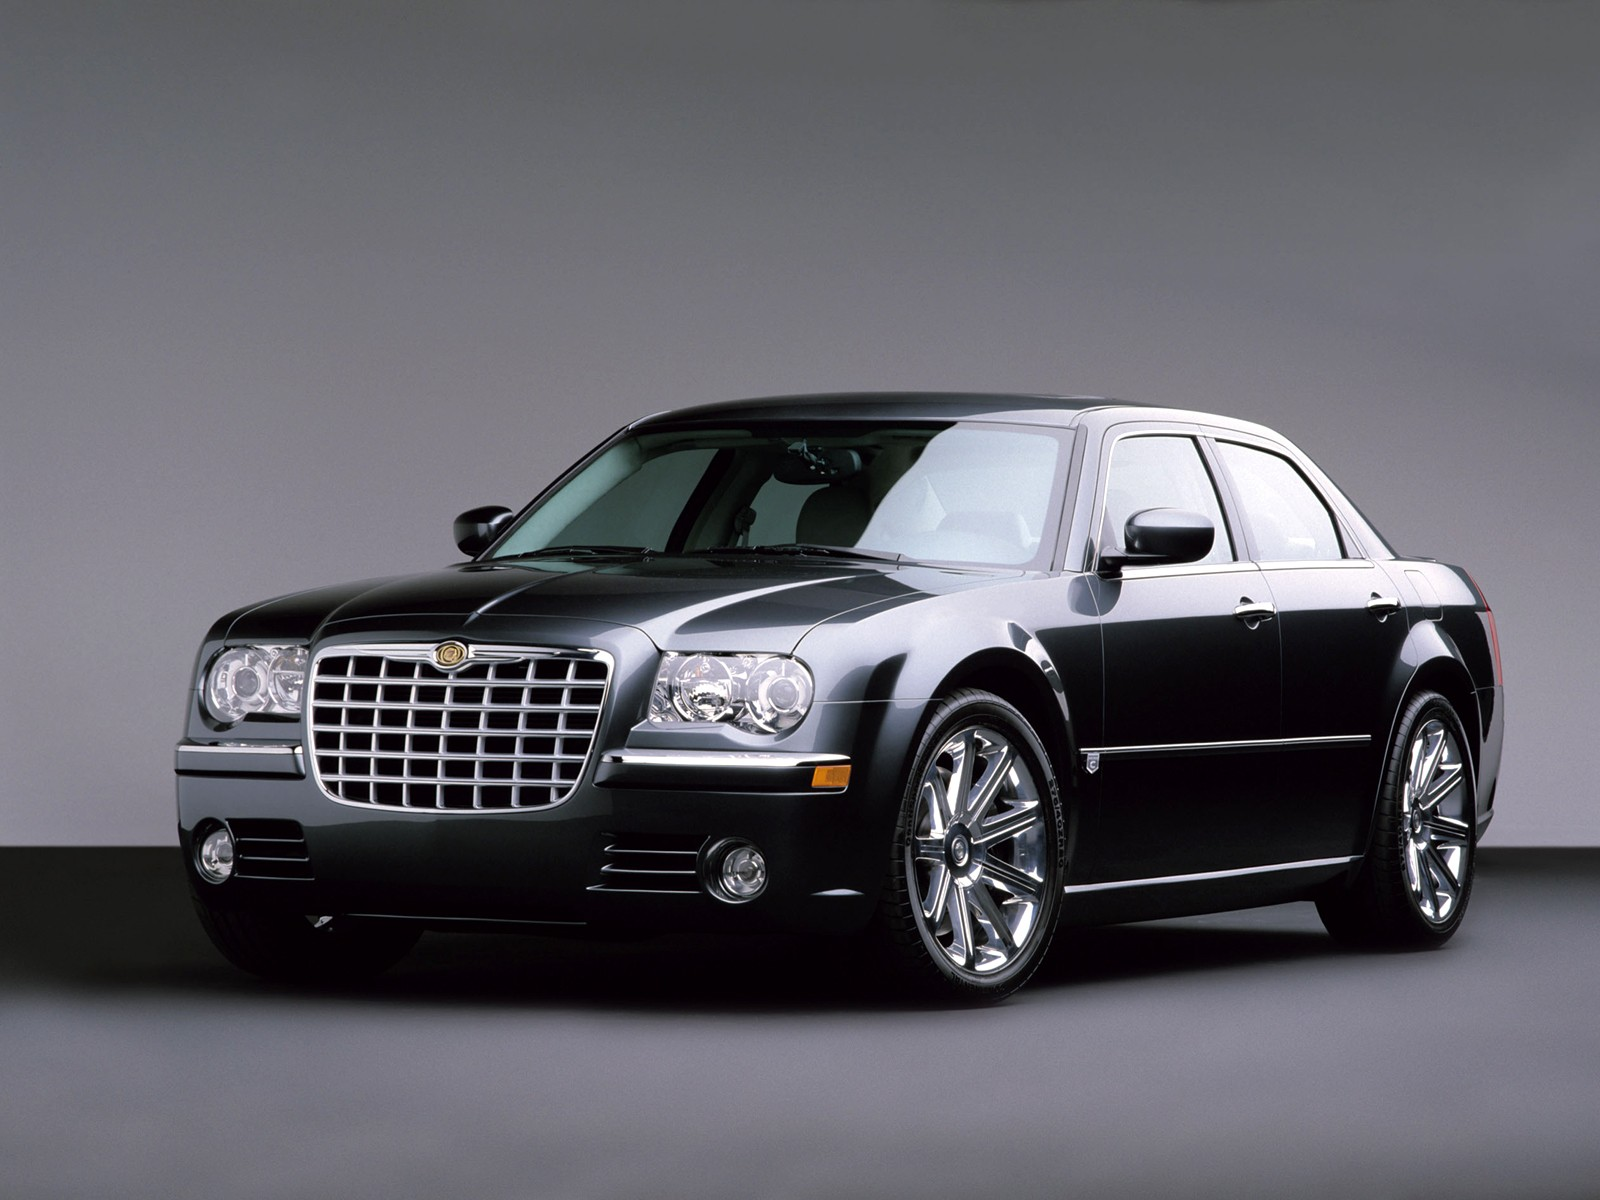 Chrysler 300C - 1600 x 1200, 02 из 19